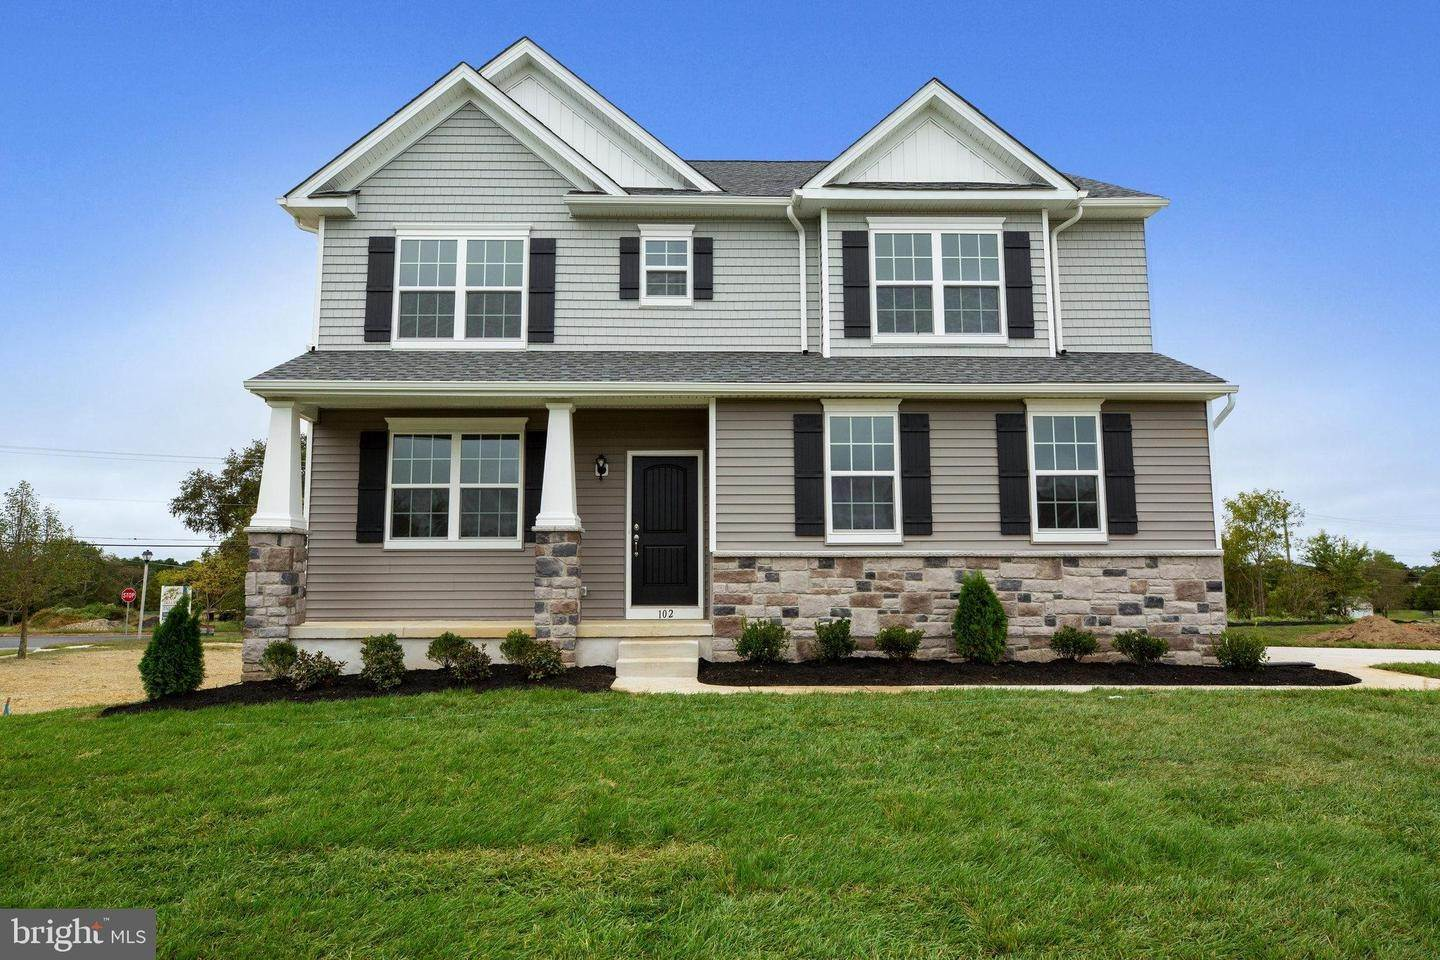 Detached House for Sale at O CARLISLE Avenue Cherry Hill, New Jersey 08002 United States